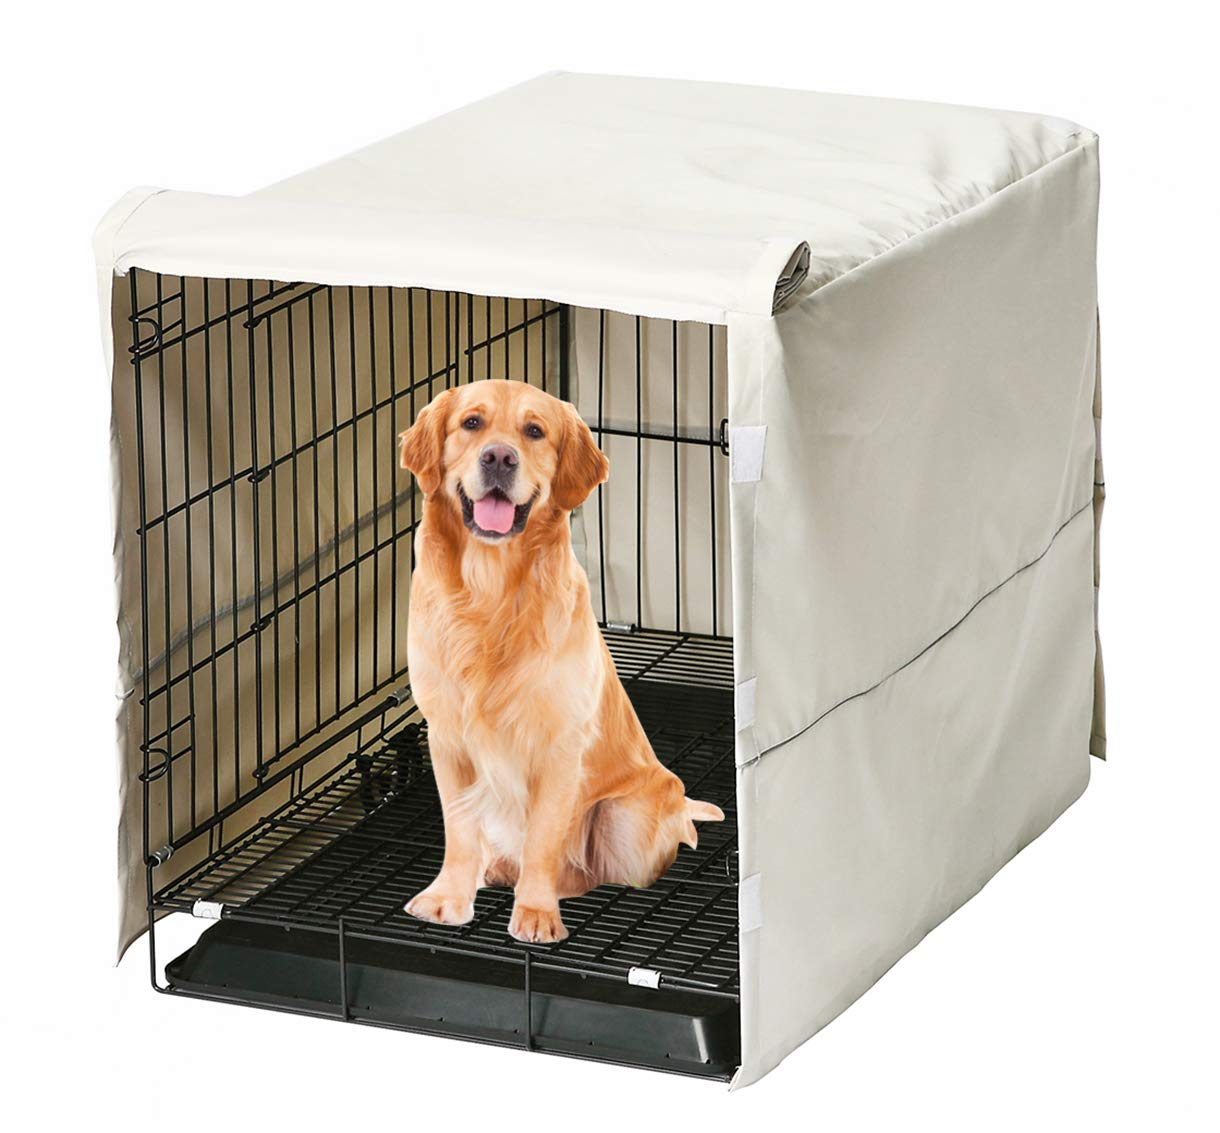 Morezi Dog Crate Cover for Wire Crates, Fits Most 30'' inch Dog Crates. Easy to Put On, Take Off, and Adjust - Cover only - Beige - Medium